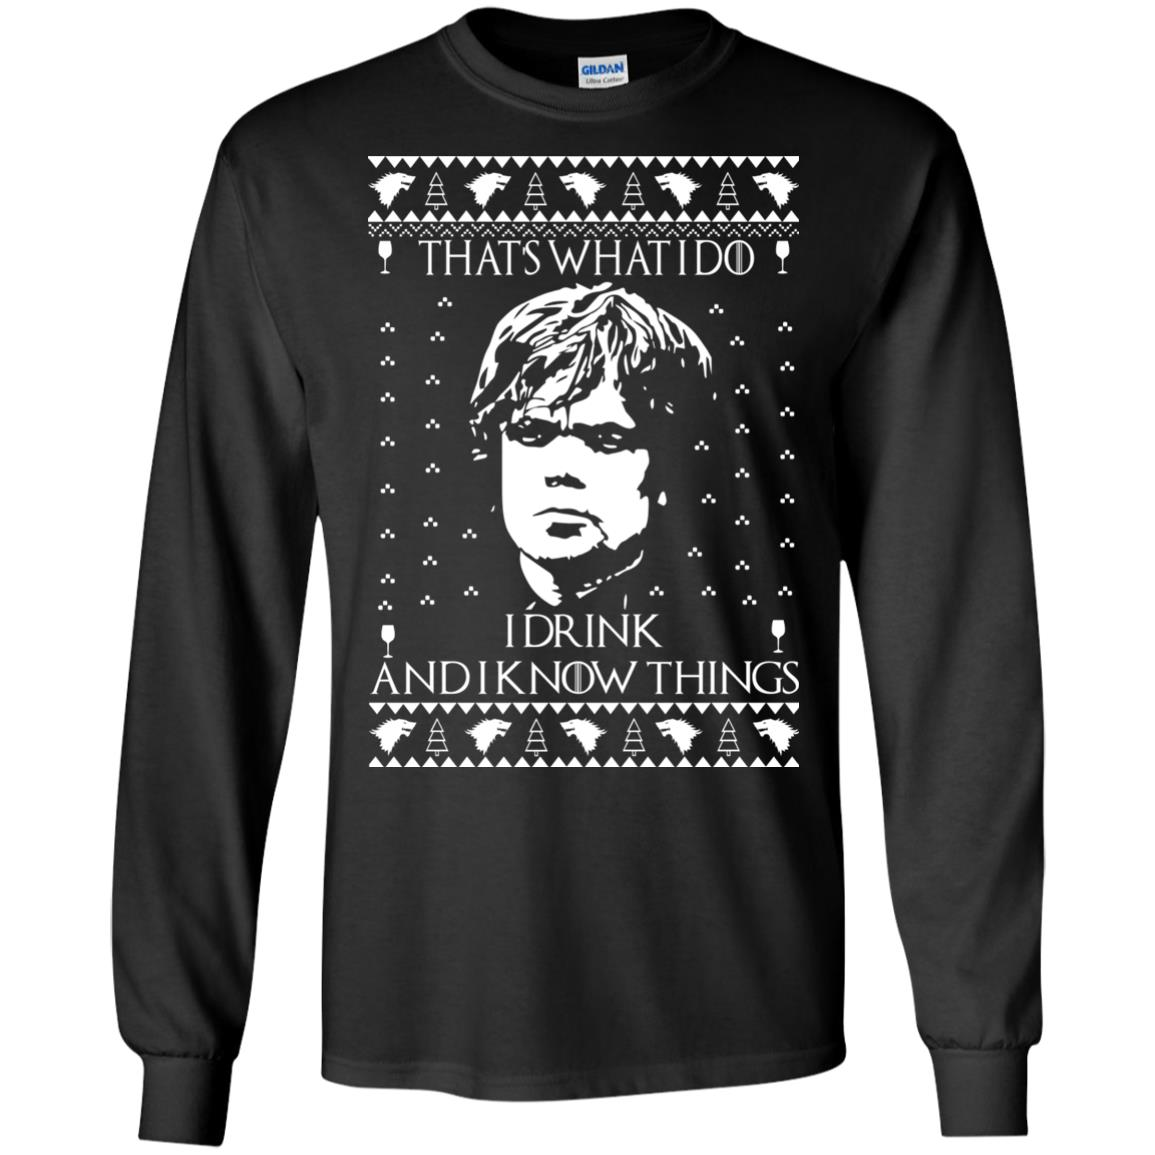 image 3001 - Tyrion Lannister I Drink and I Know Things Ugly Christmas Sweater, Shirt